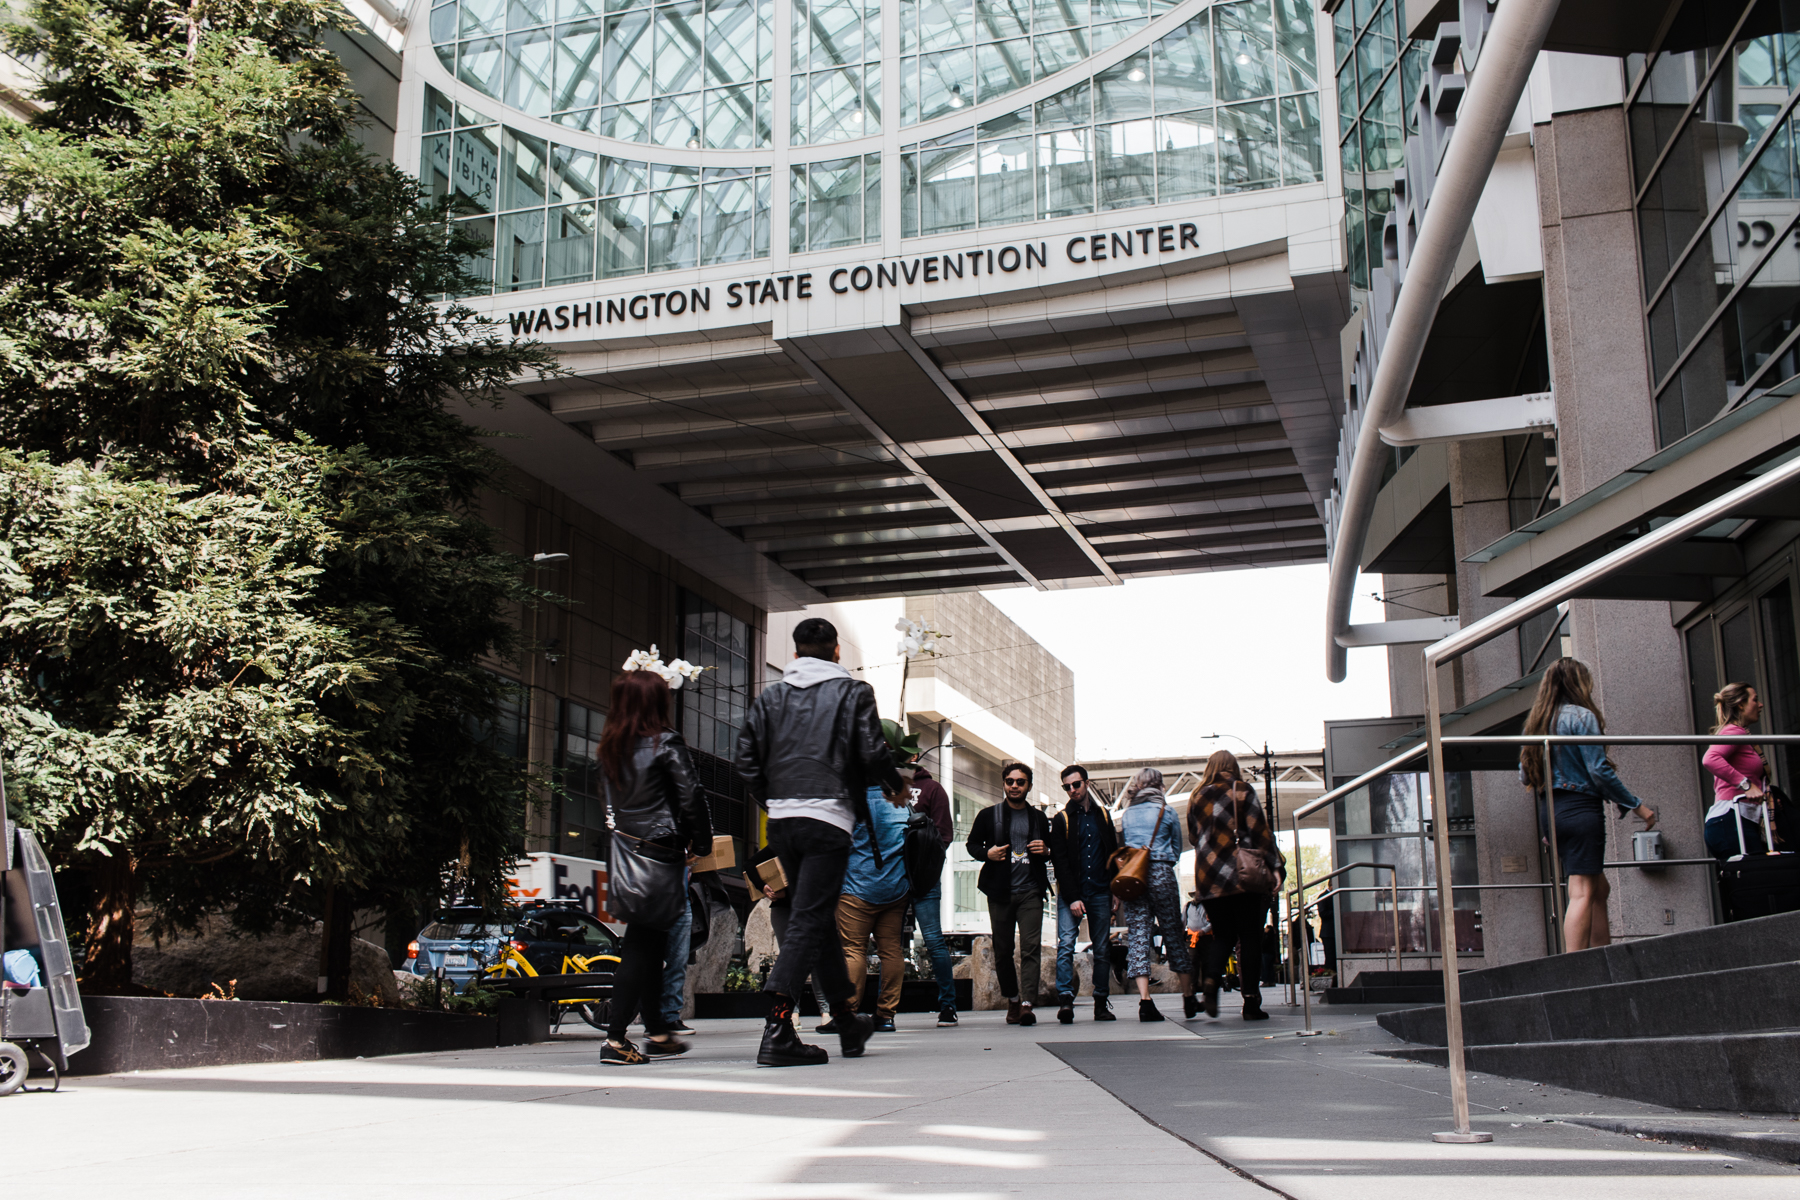 People walking into the Washington State Convention Center in Seattle.